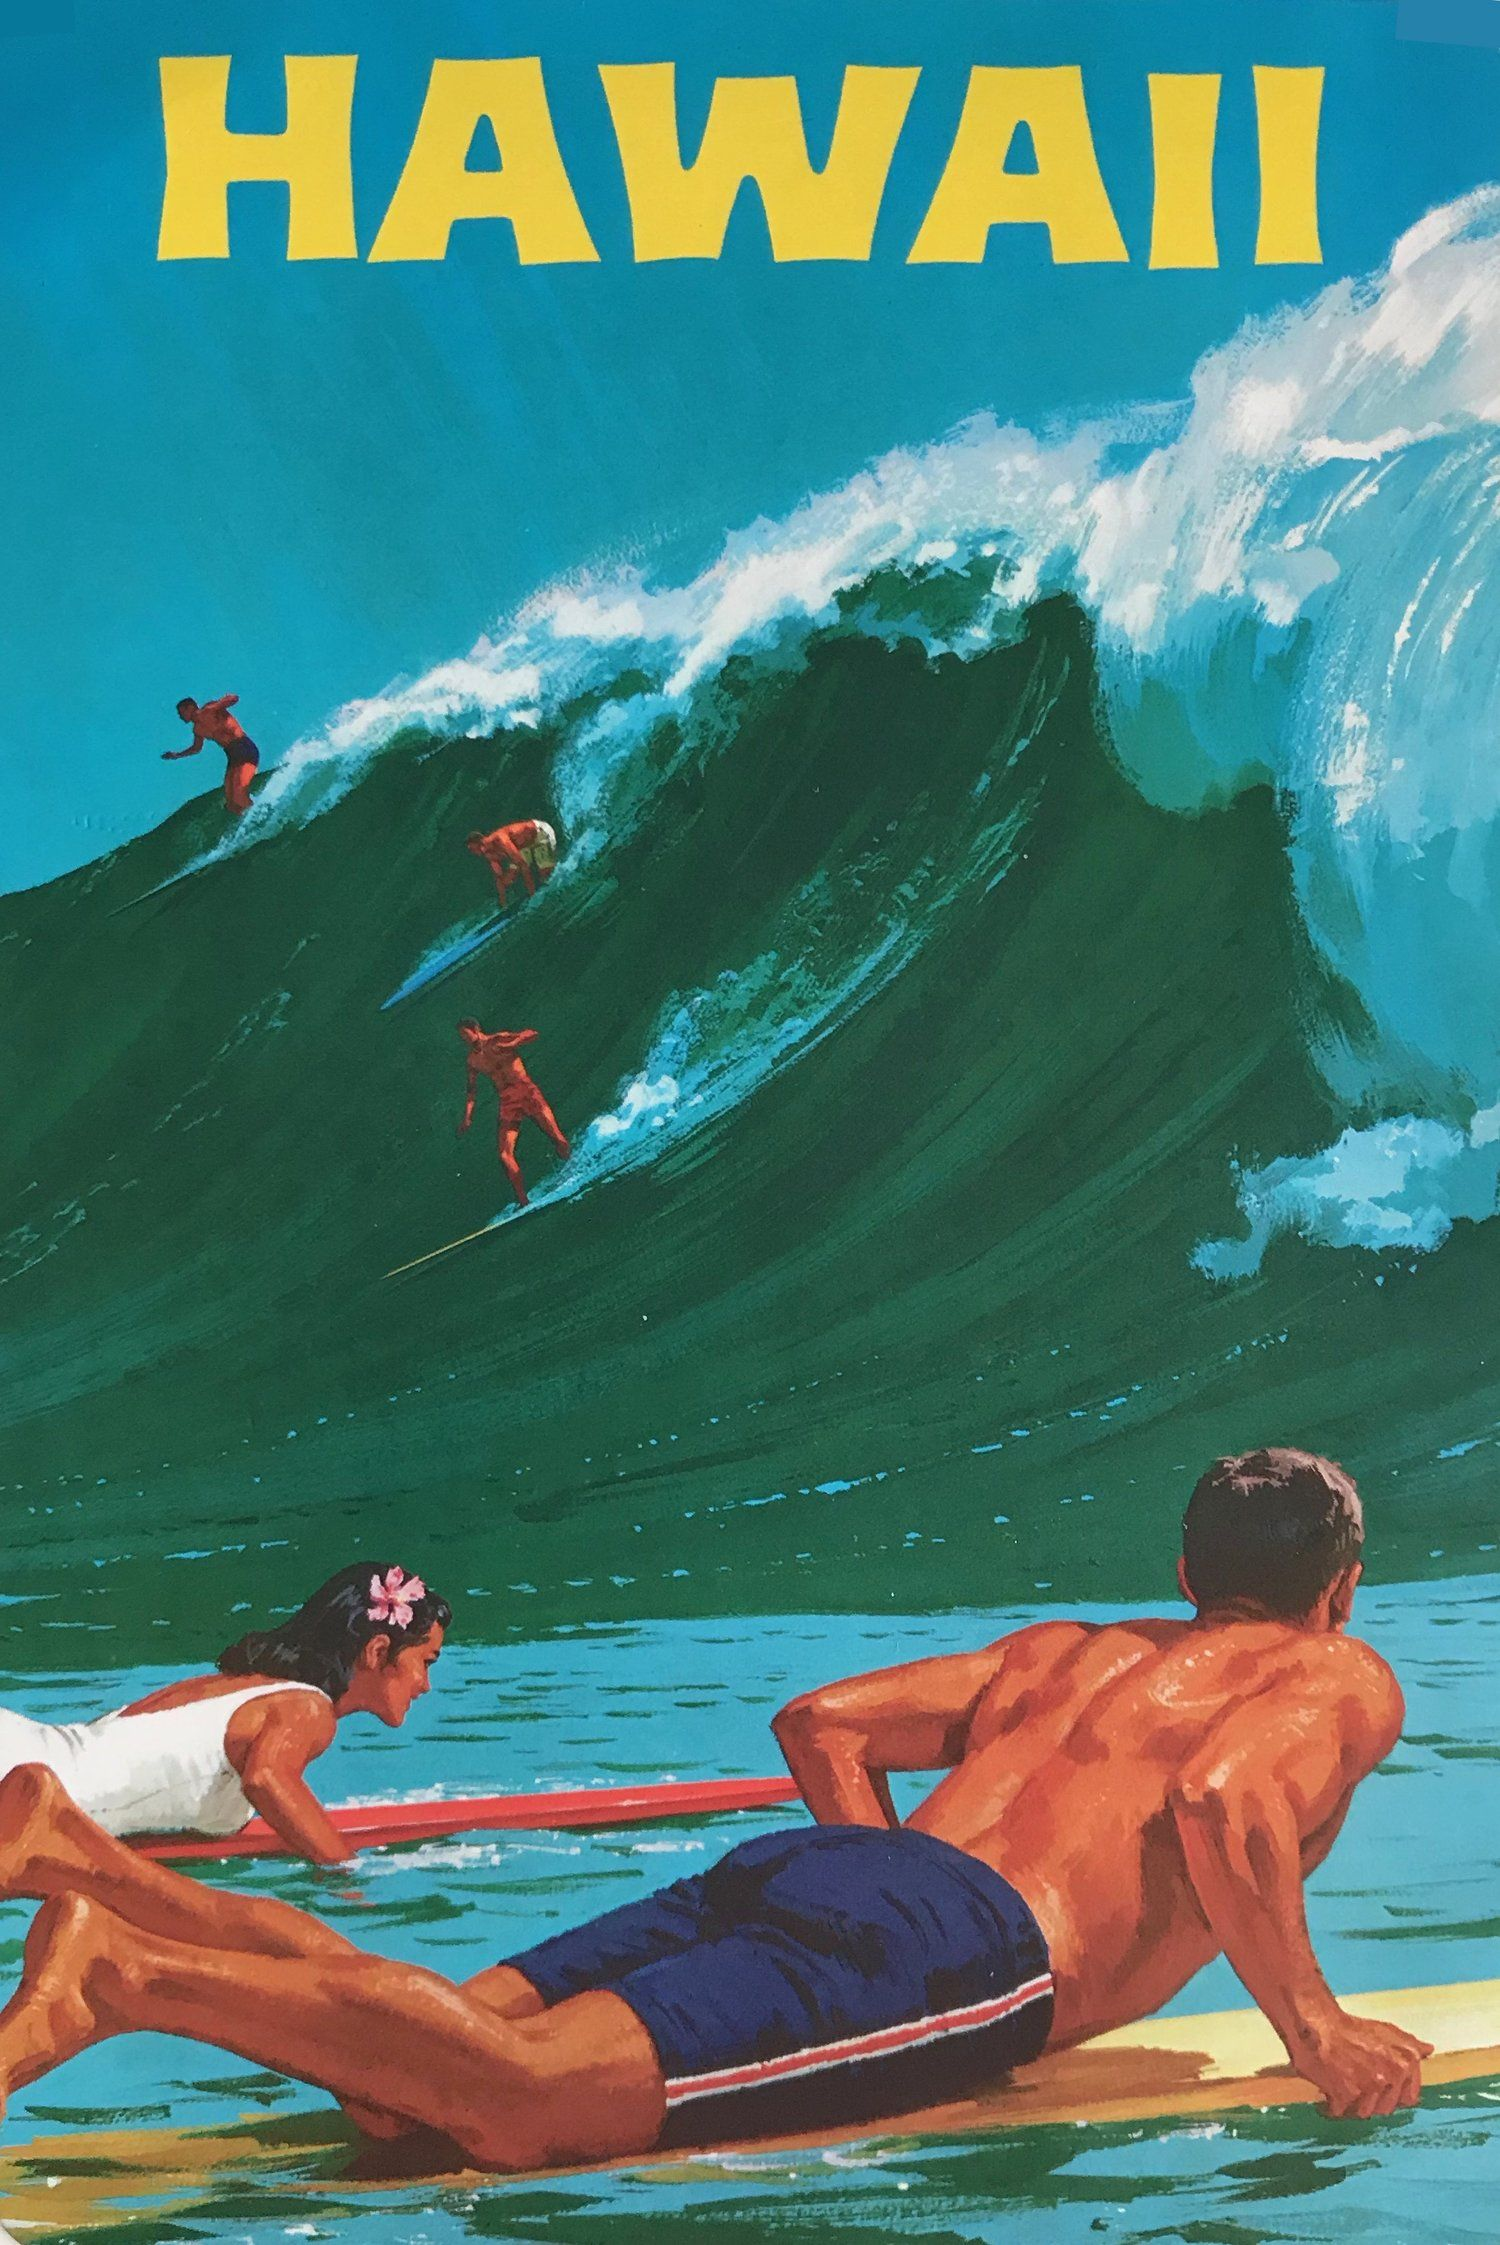 9 Vintage Hawaii Travel Posters (That Will Make You Want To Pack Your Bags!) — The Anthrotorian